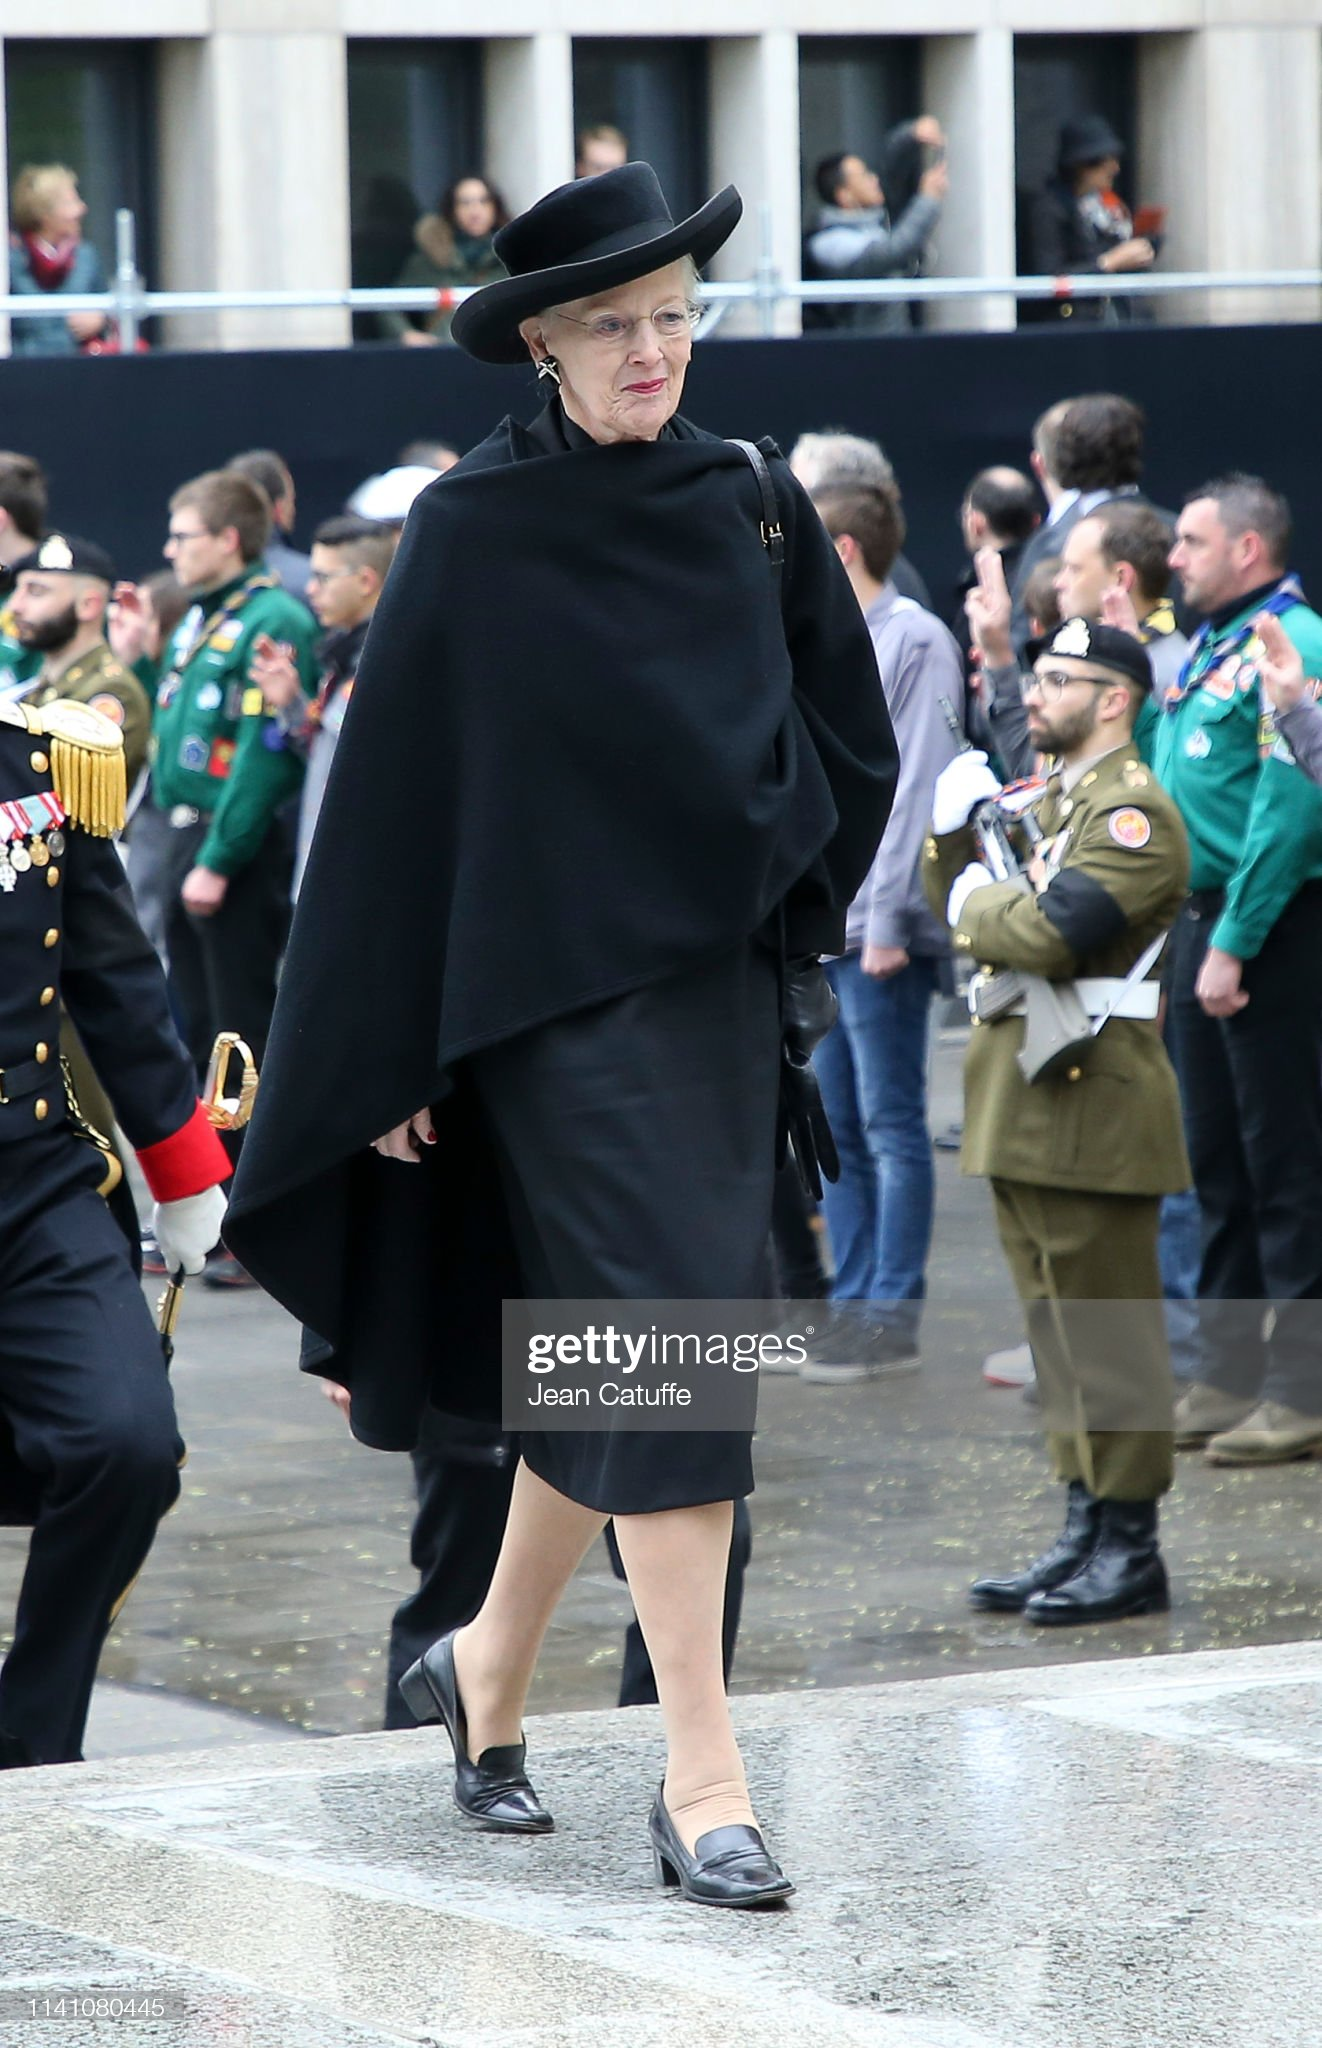 Похороны Великого Герцога Жана https://media.gettyimages.com/photos/queen-margrethe-ii-of-denmark-arrives-for-the-funeral-of-grand-duke-picture-id1141080445?s=2048x2048